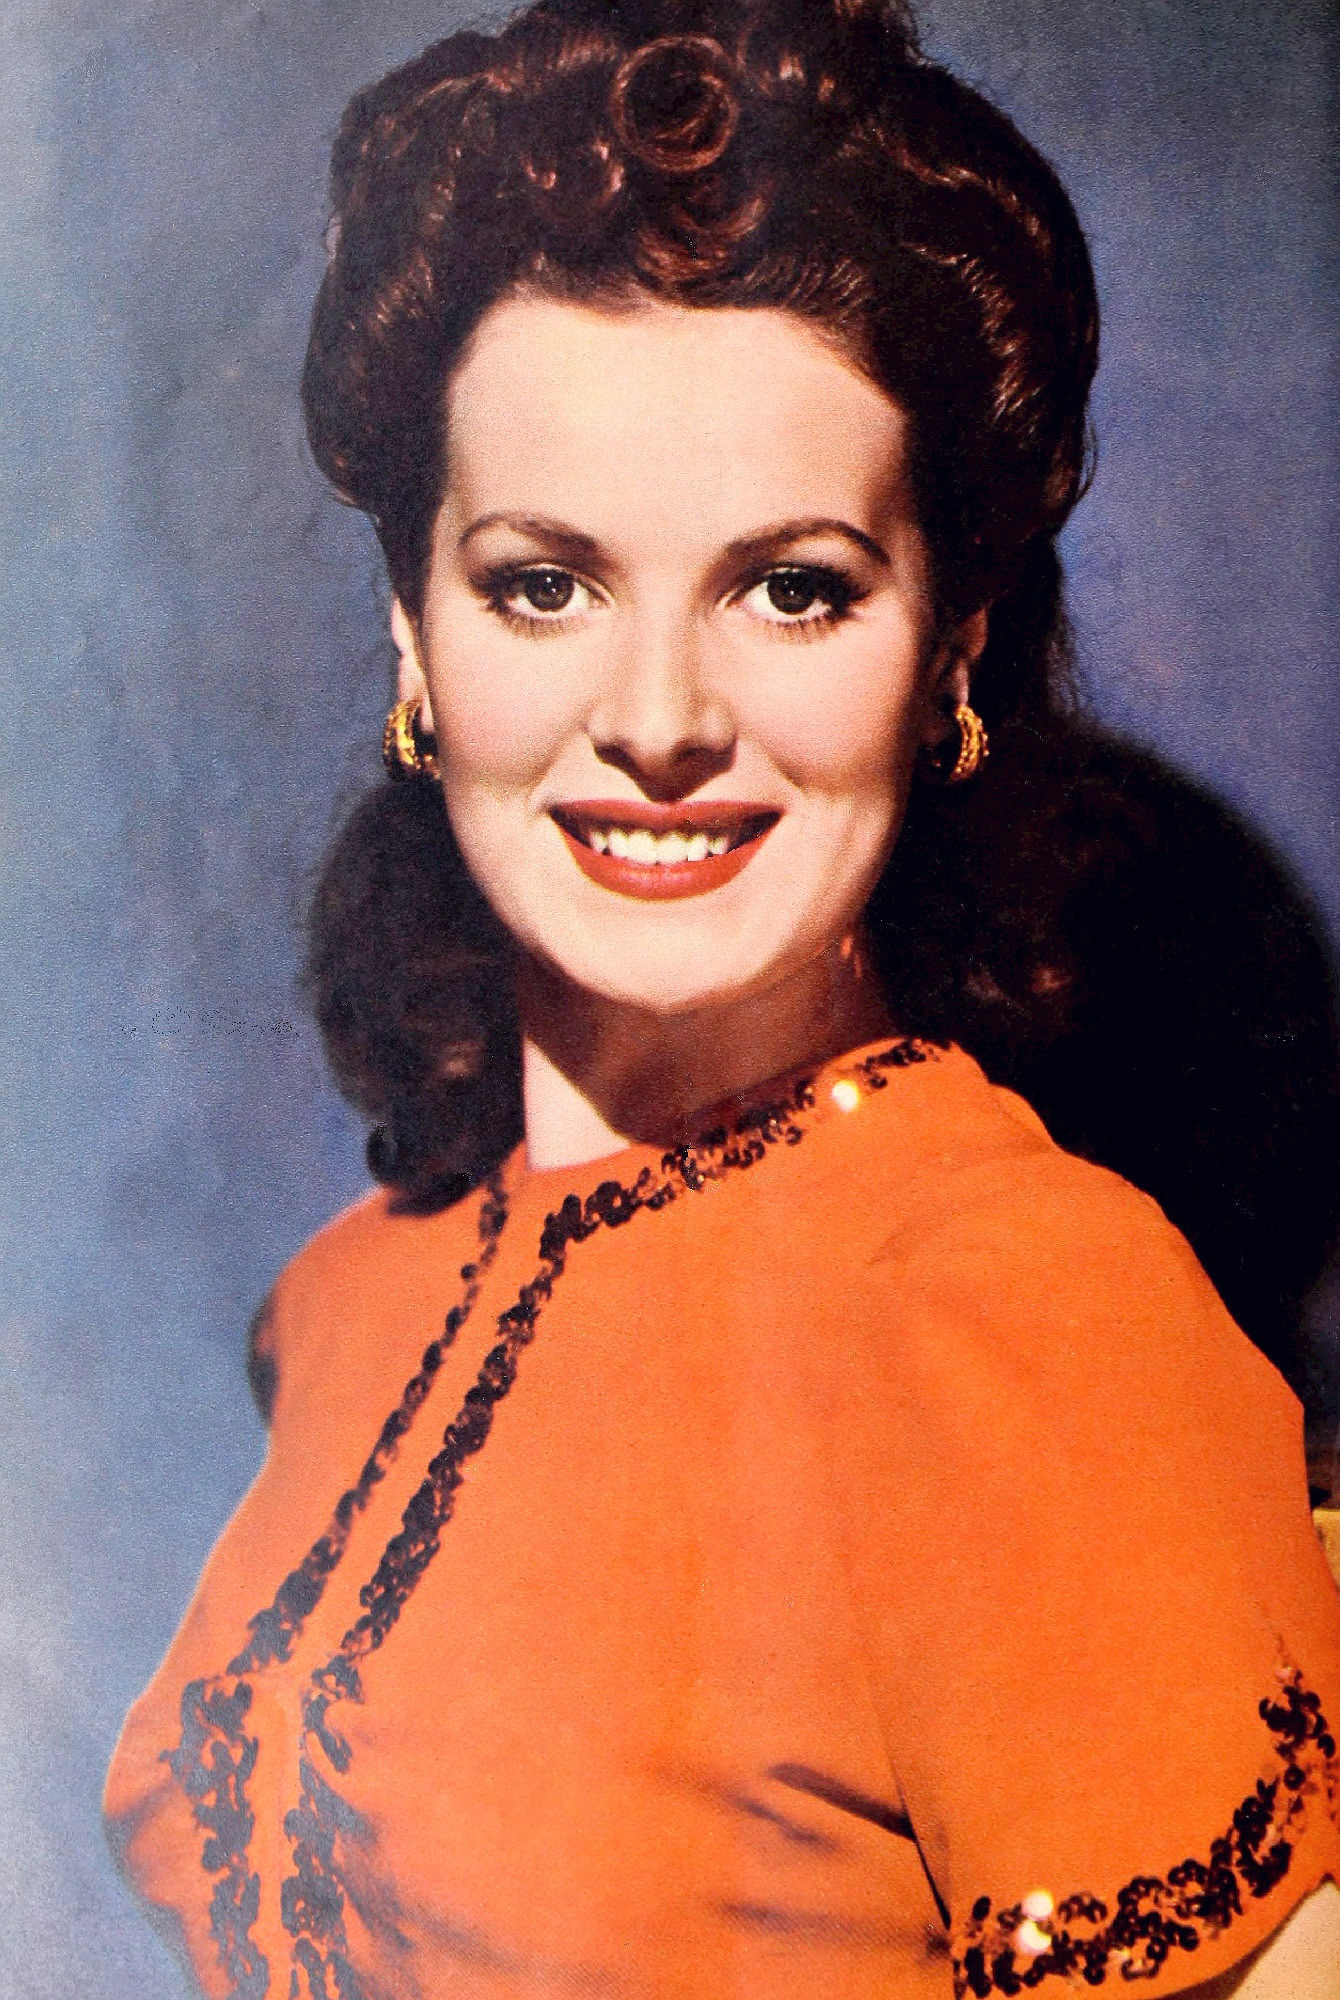 Maureen_O'Hara_in_April_1942